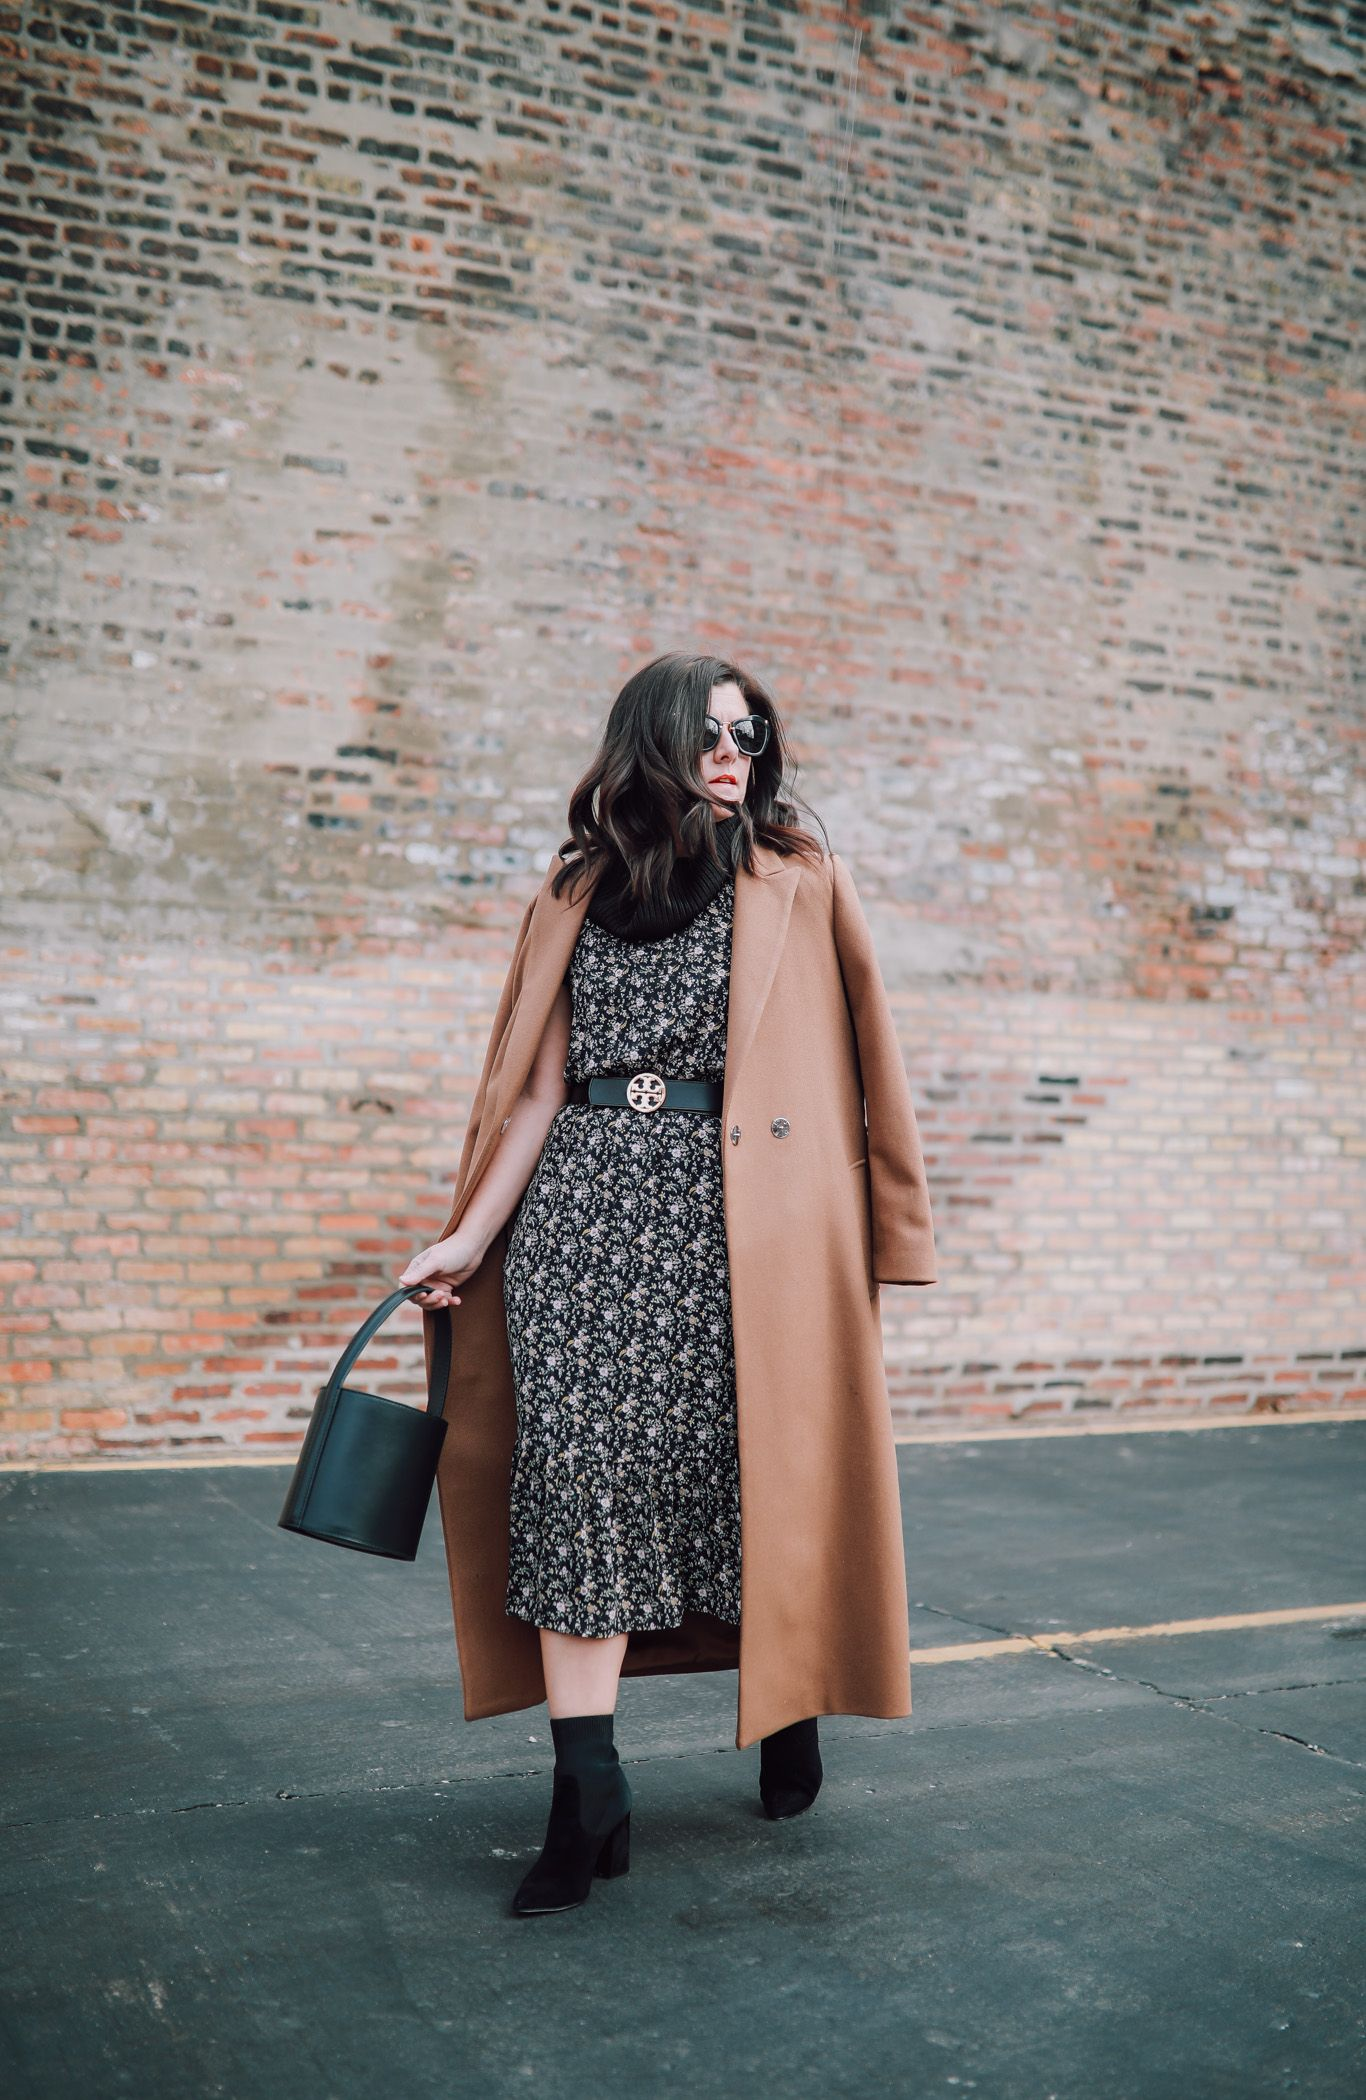 How To Style Your Summer Dress For Winter Giveaway Summer Dresses Winter Dresses London Fashion Bloggers [ 2100 x 1366 Pixel ]